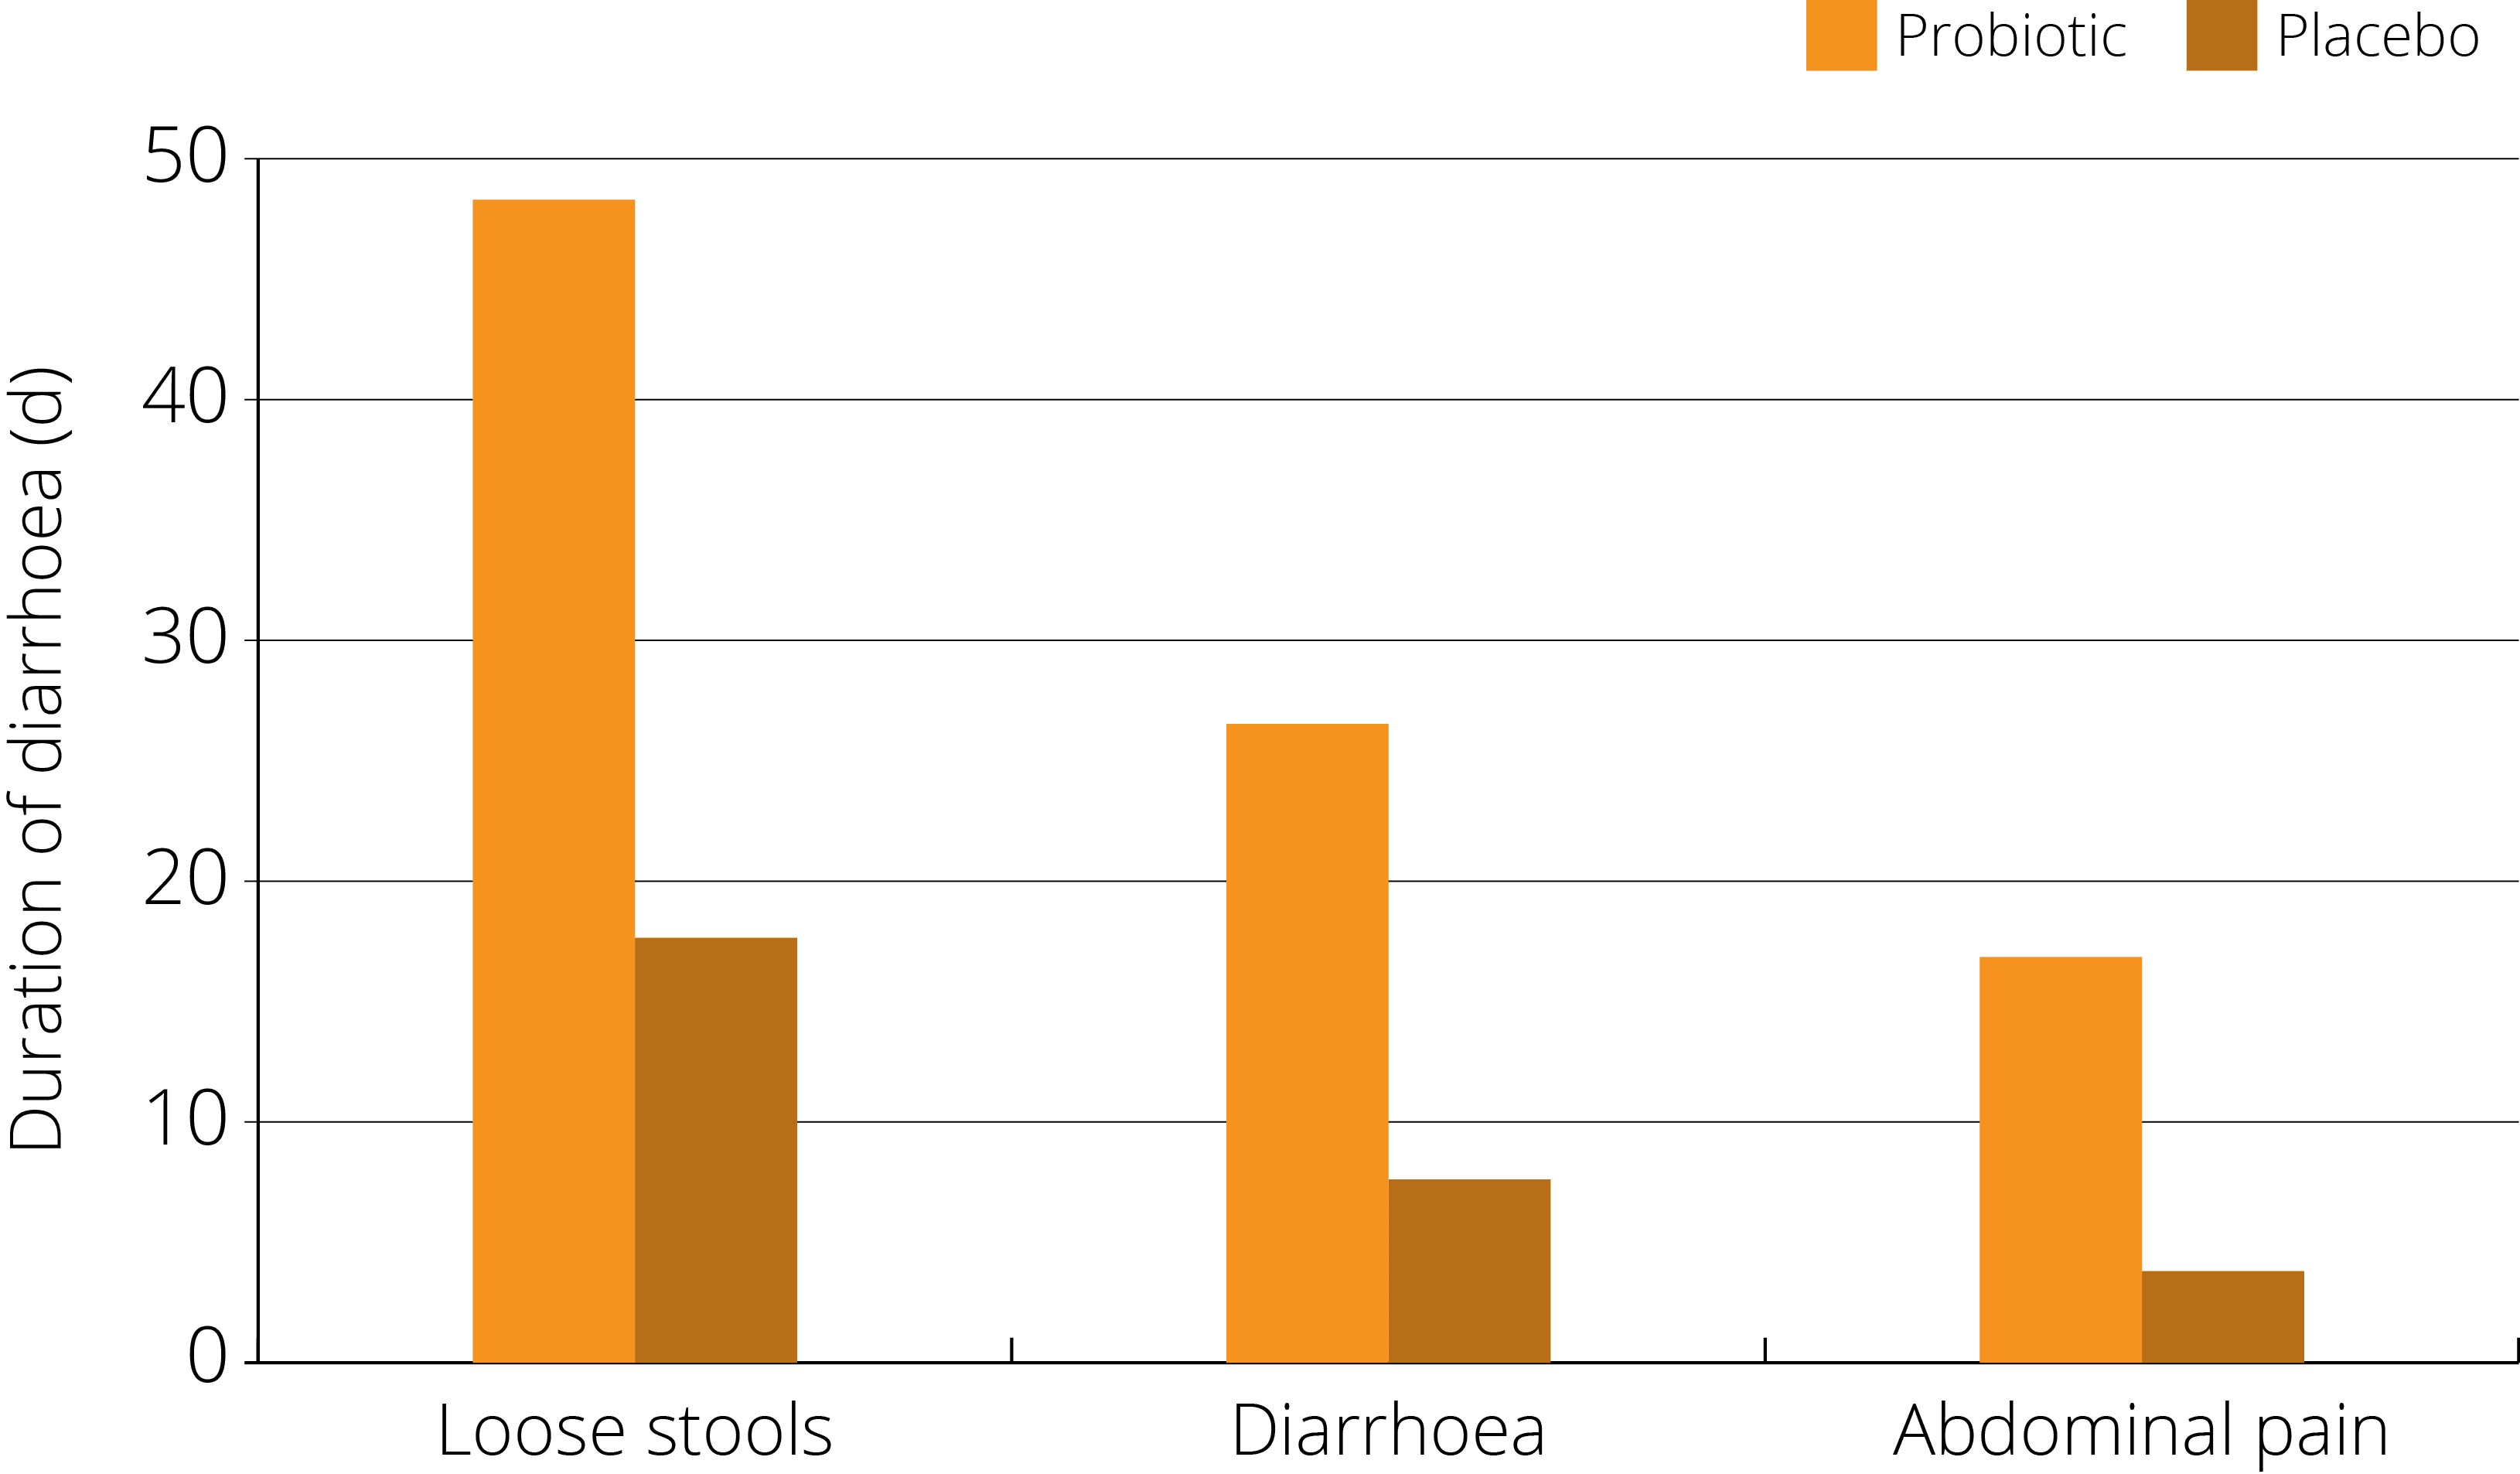 graph trial results  probiotic on diarrhoea